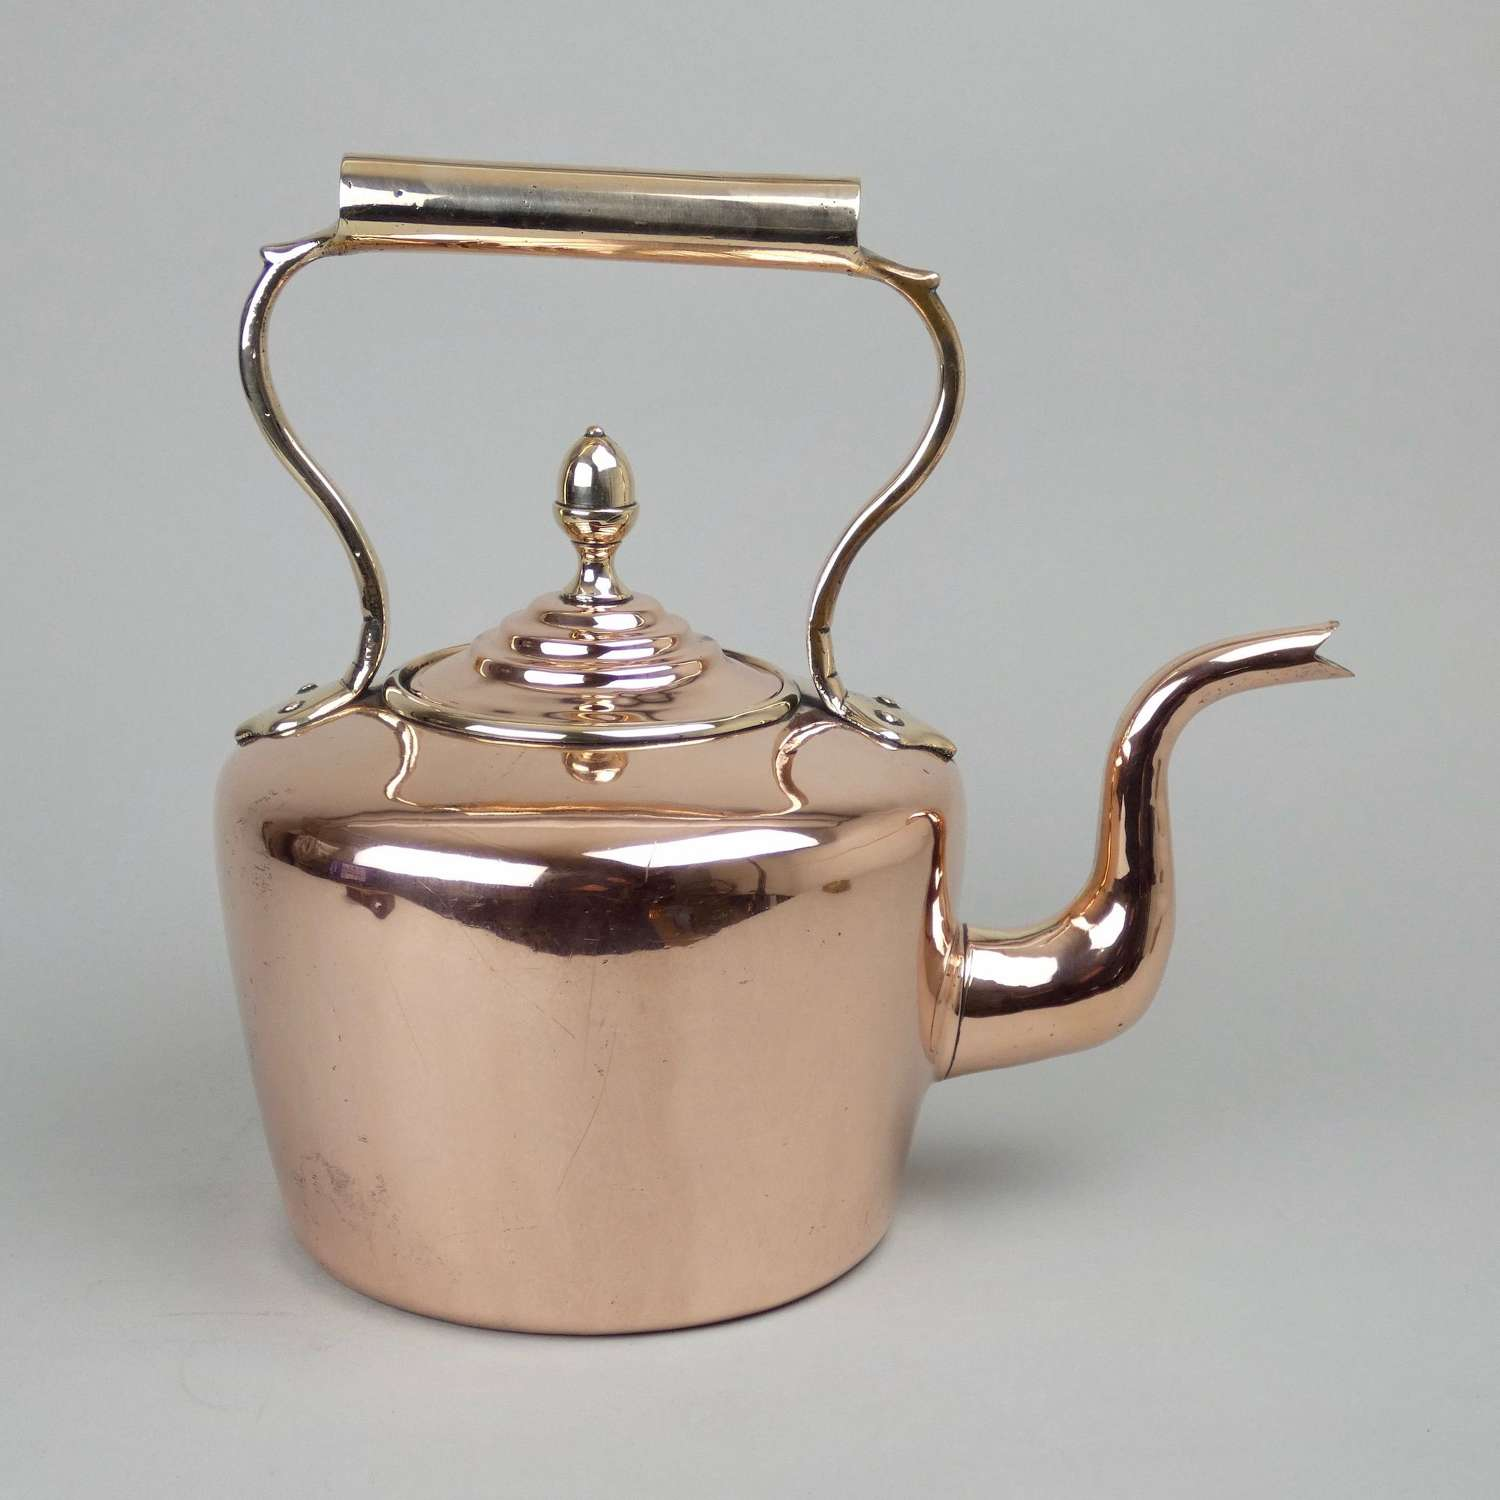 Good English copper kettle